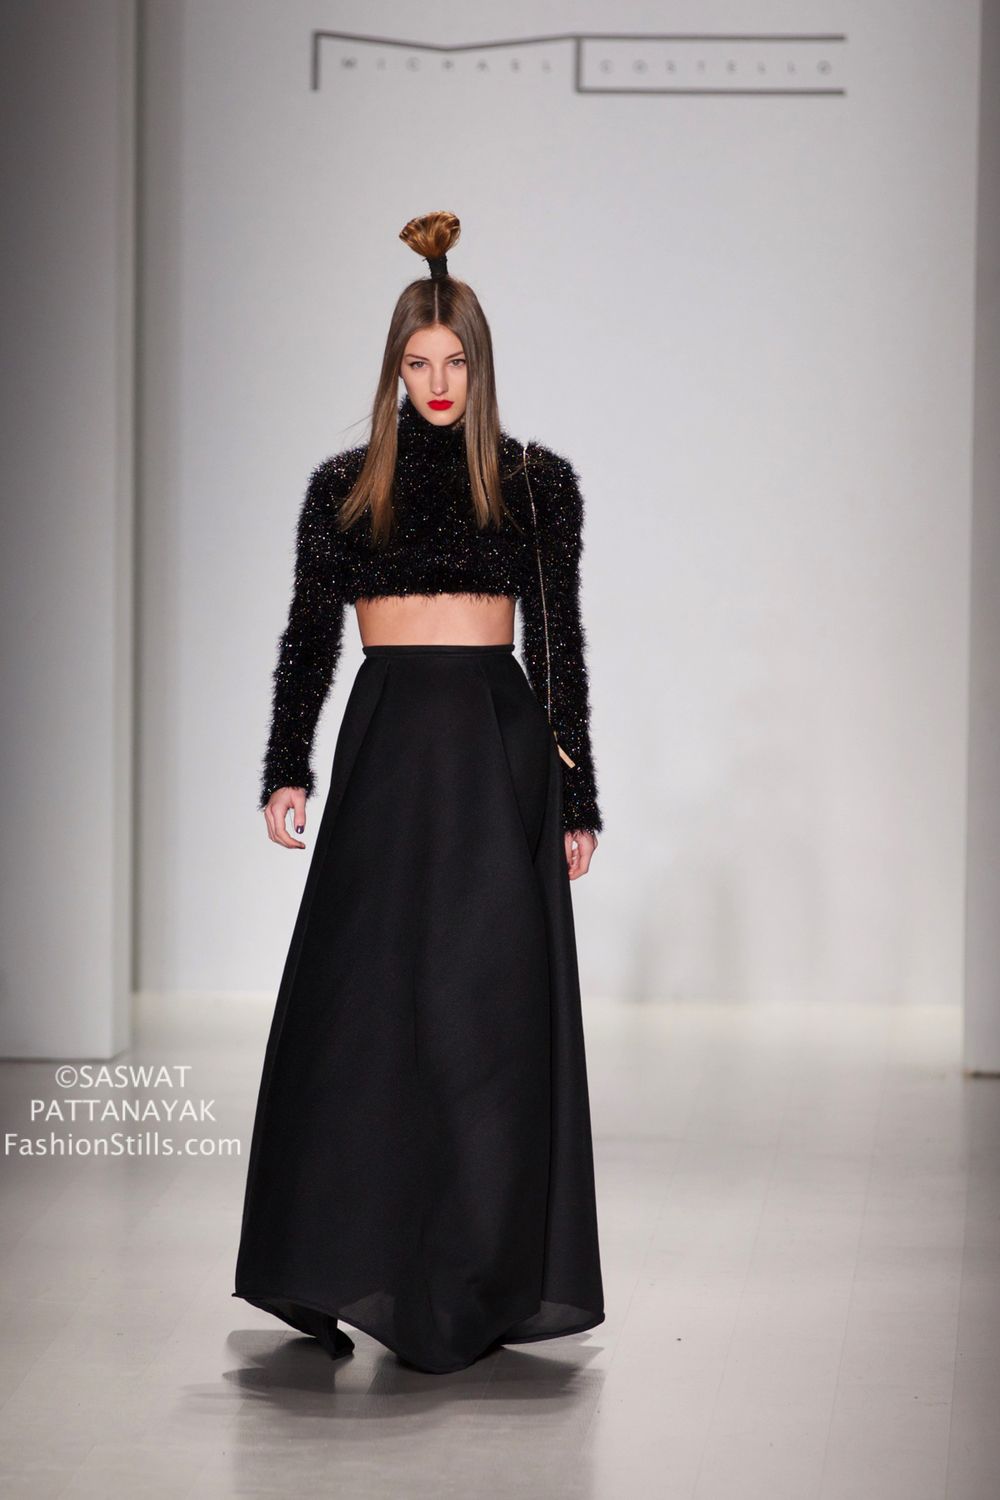 Saswat-Michael-Costello26.jpg